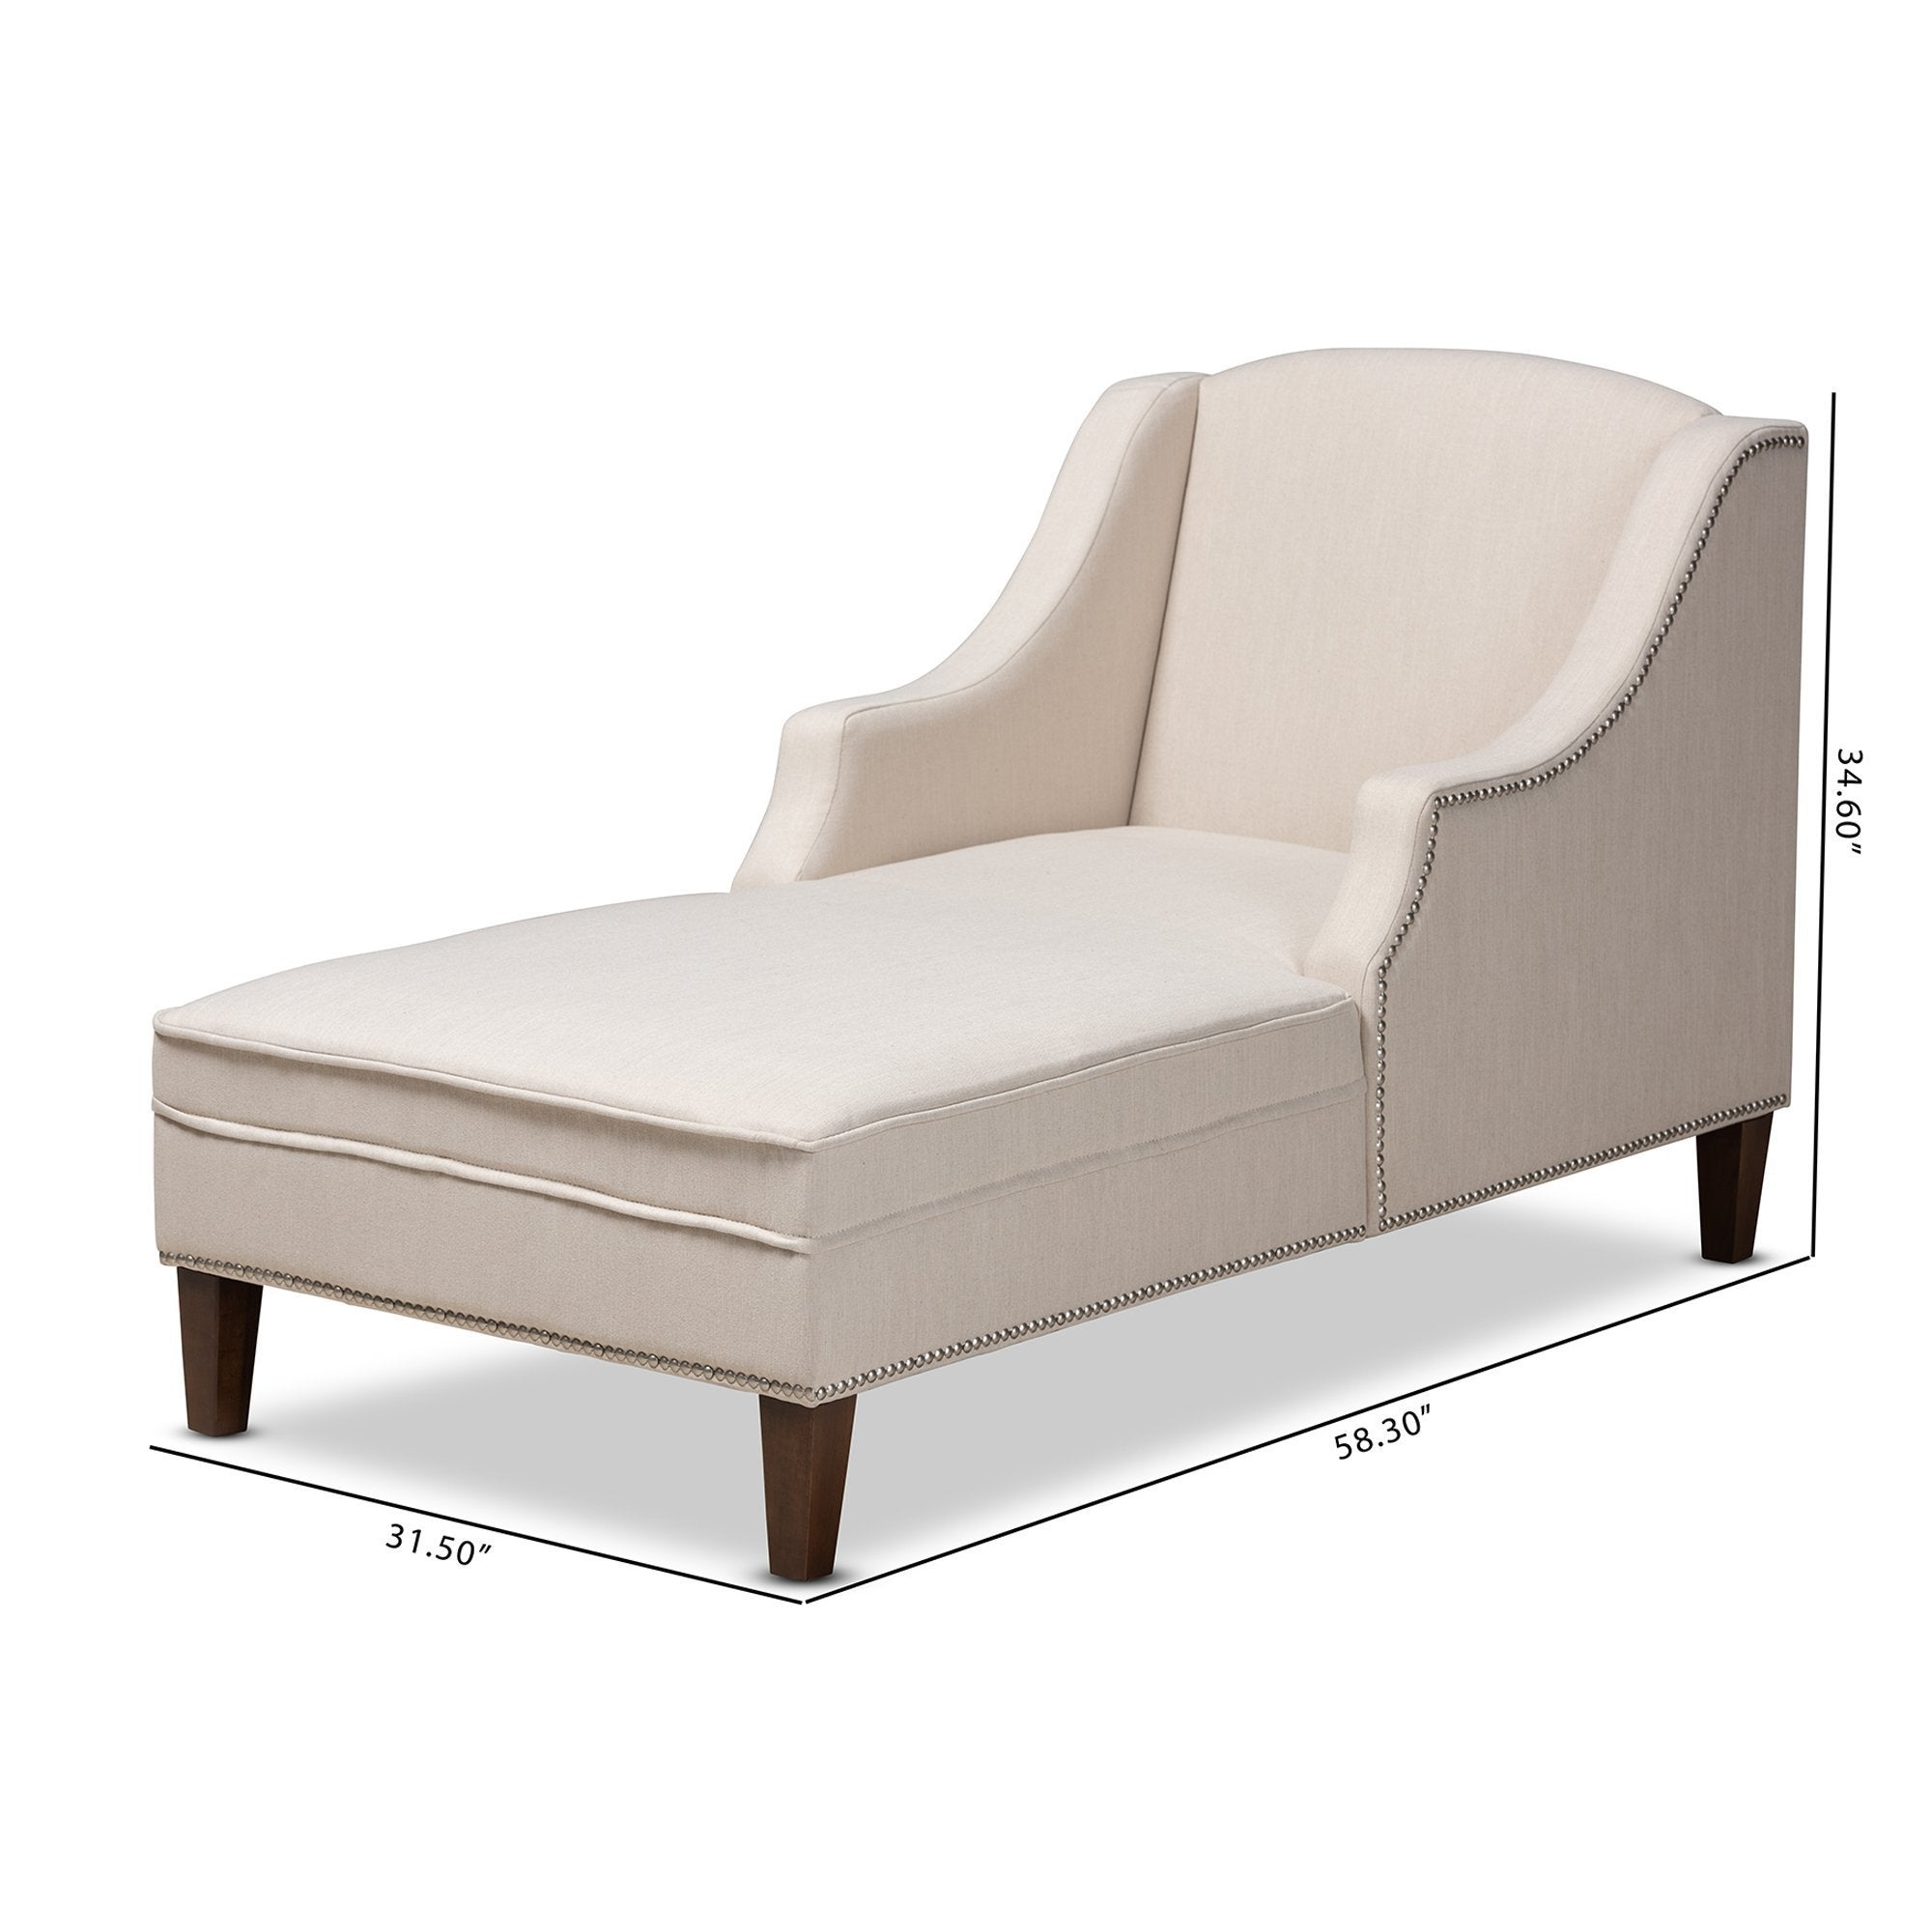 Gale Chaise Lounge.